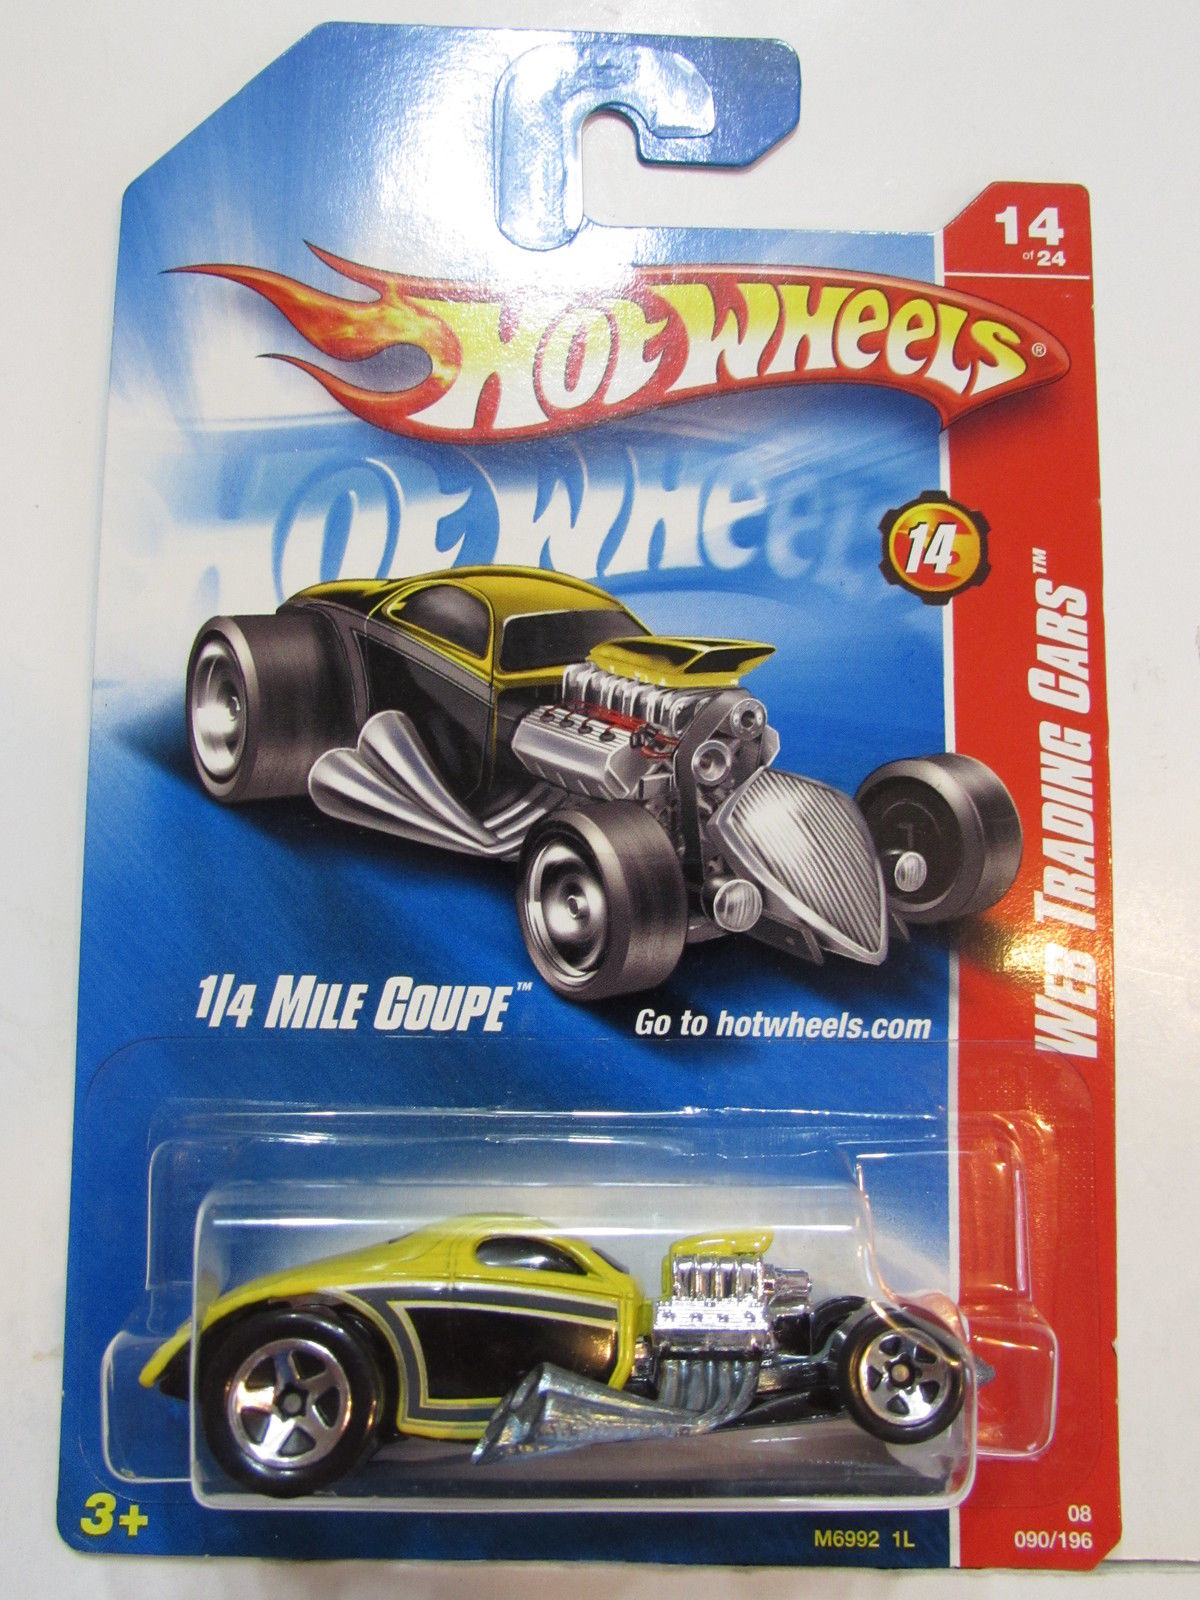 HOT WHEELS 2008 WEB TRADING CARS - 1/4 MILE COUPE YELLOW #14/24